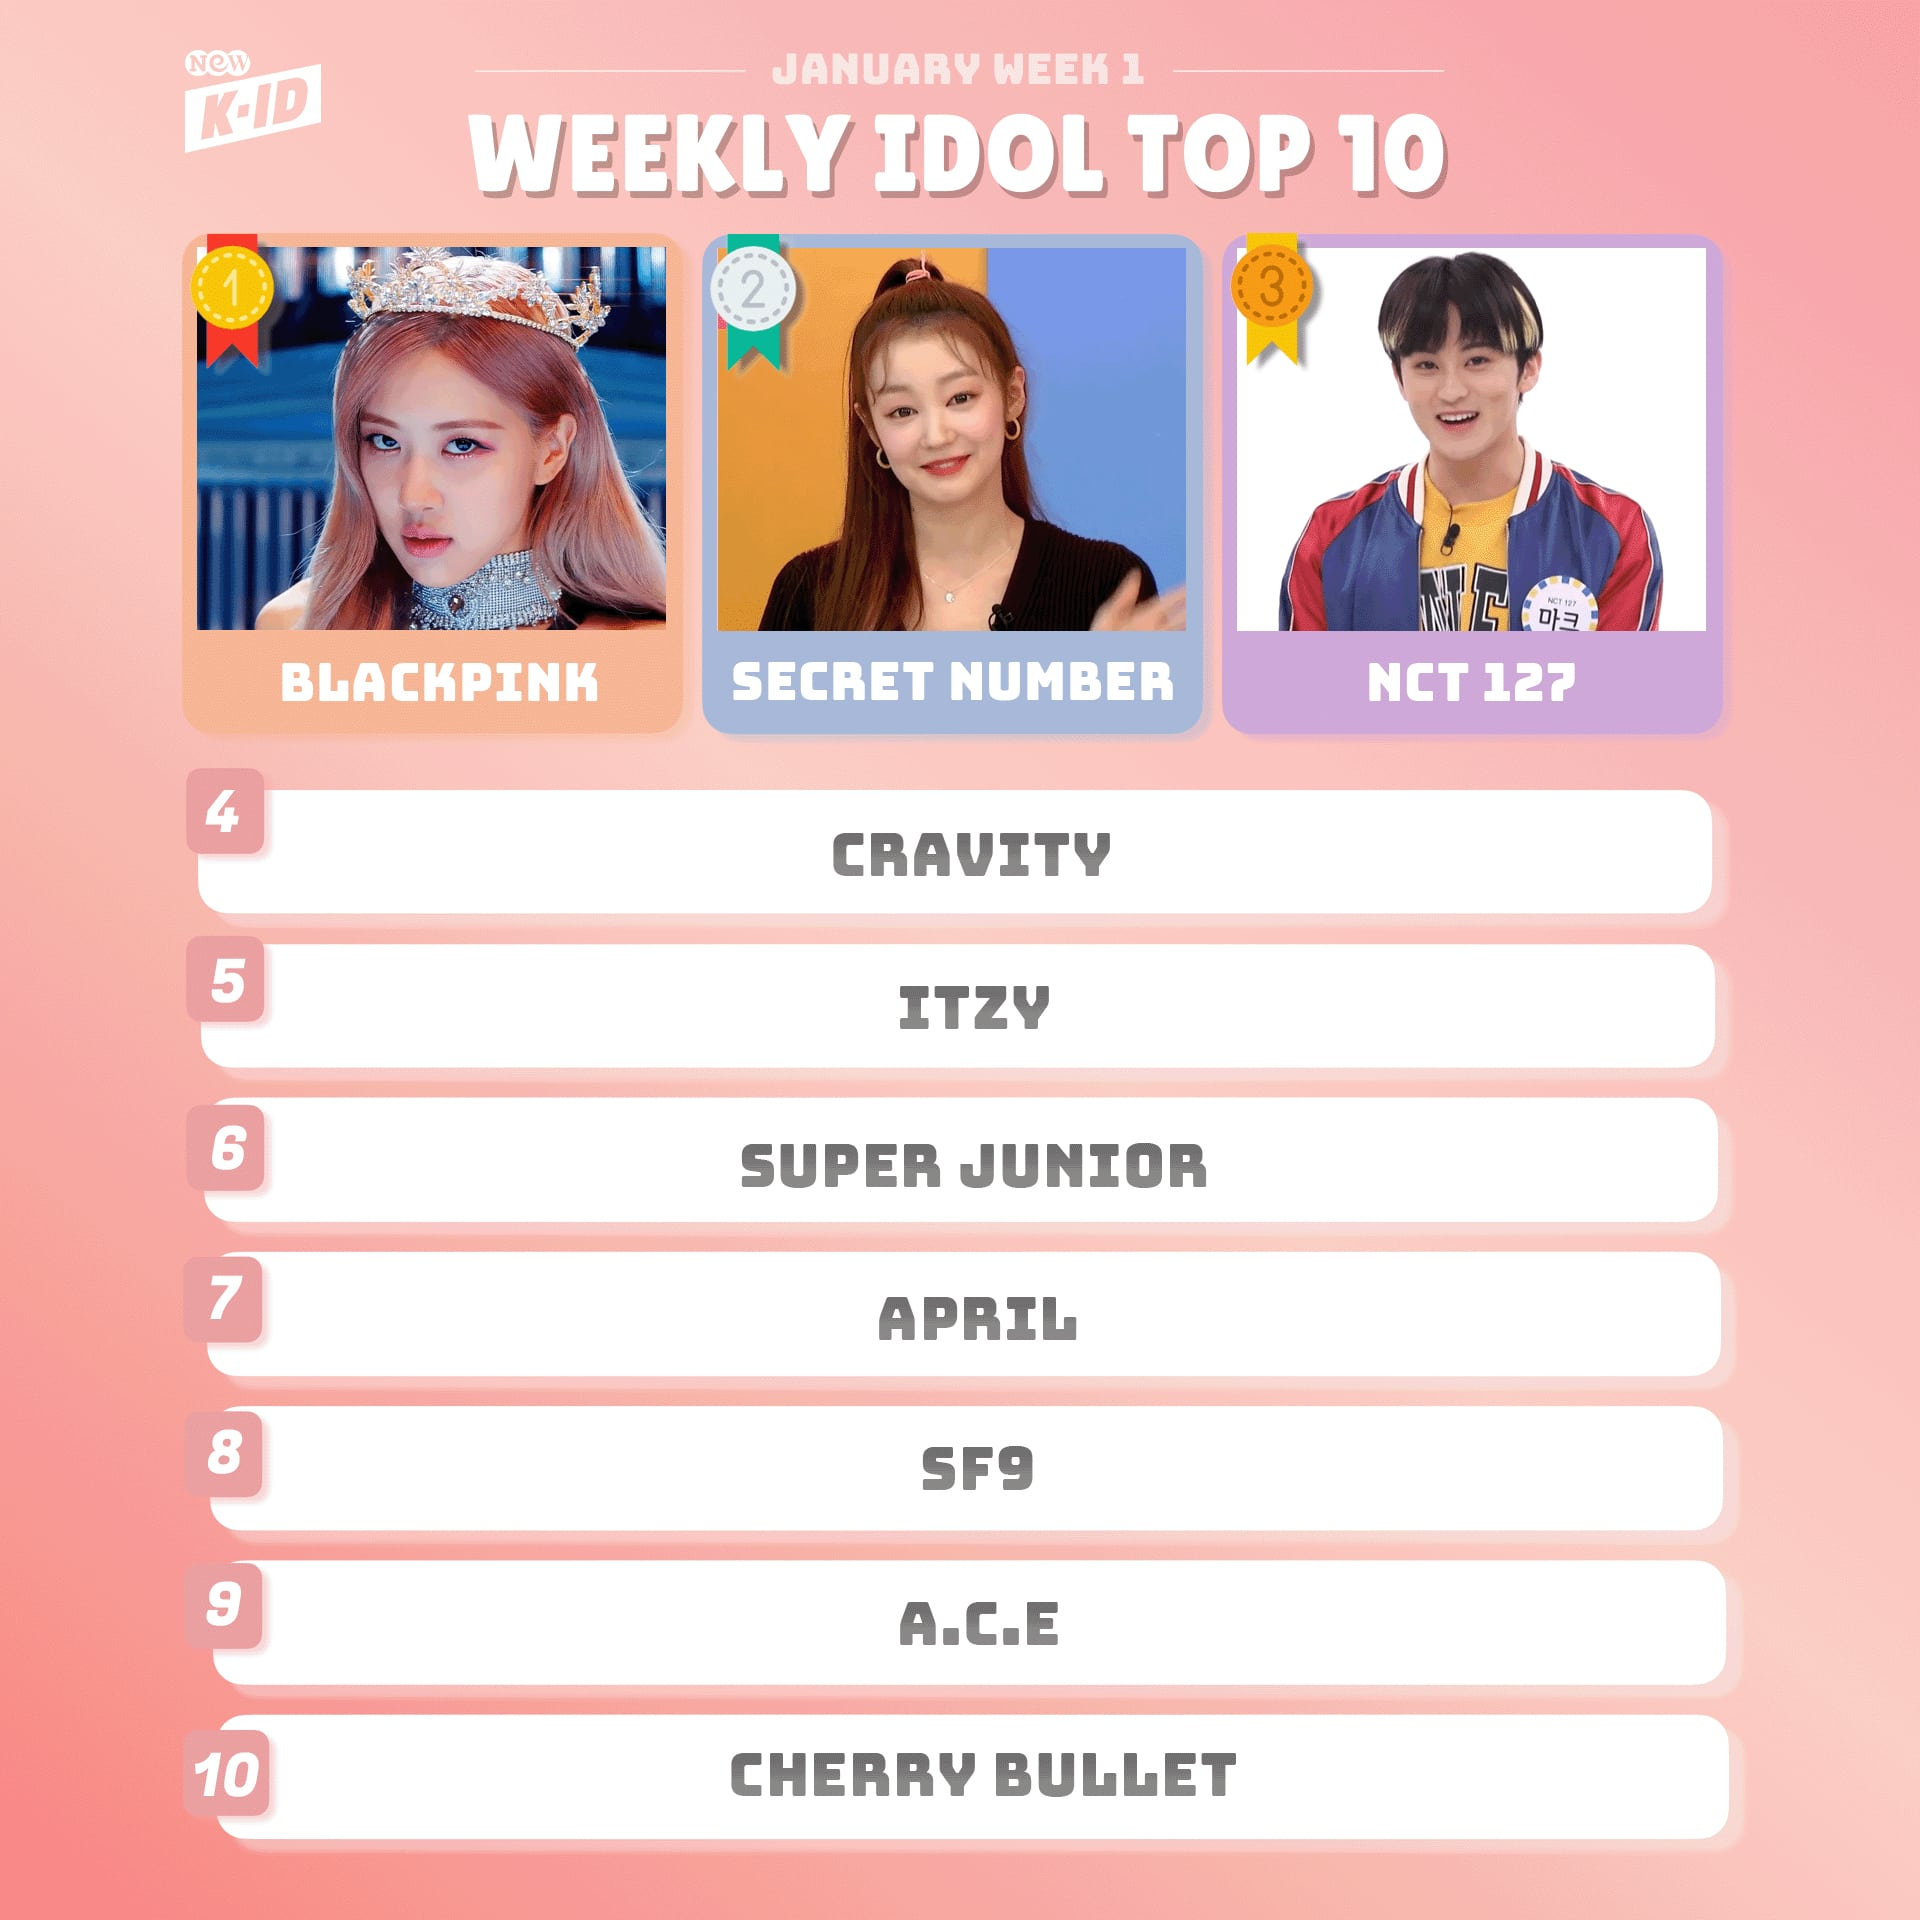 BLACKPINK Becomes The First 2021 Winner of NEW K.ID's Weekly Chart